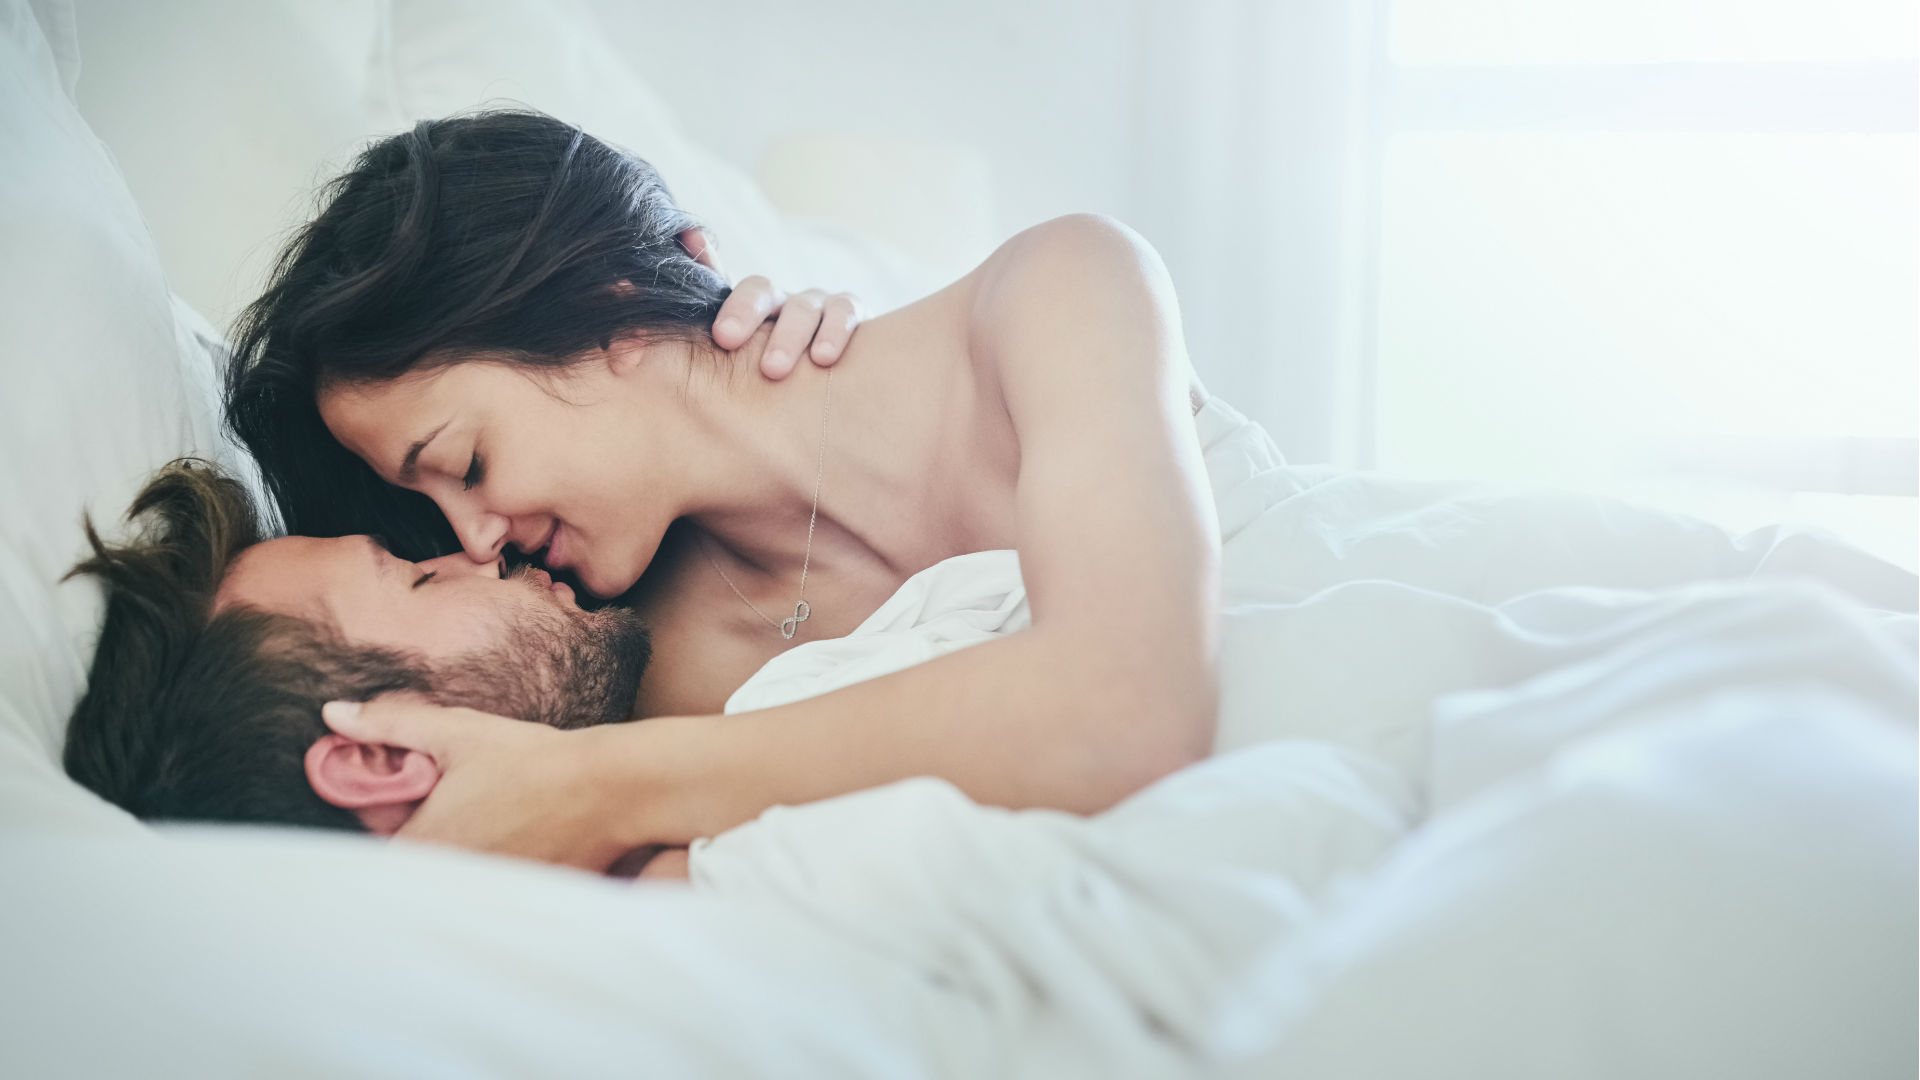 Myths And Facts About Cuddling After Sex